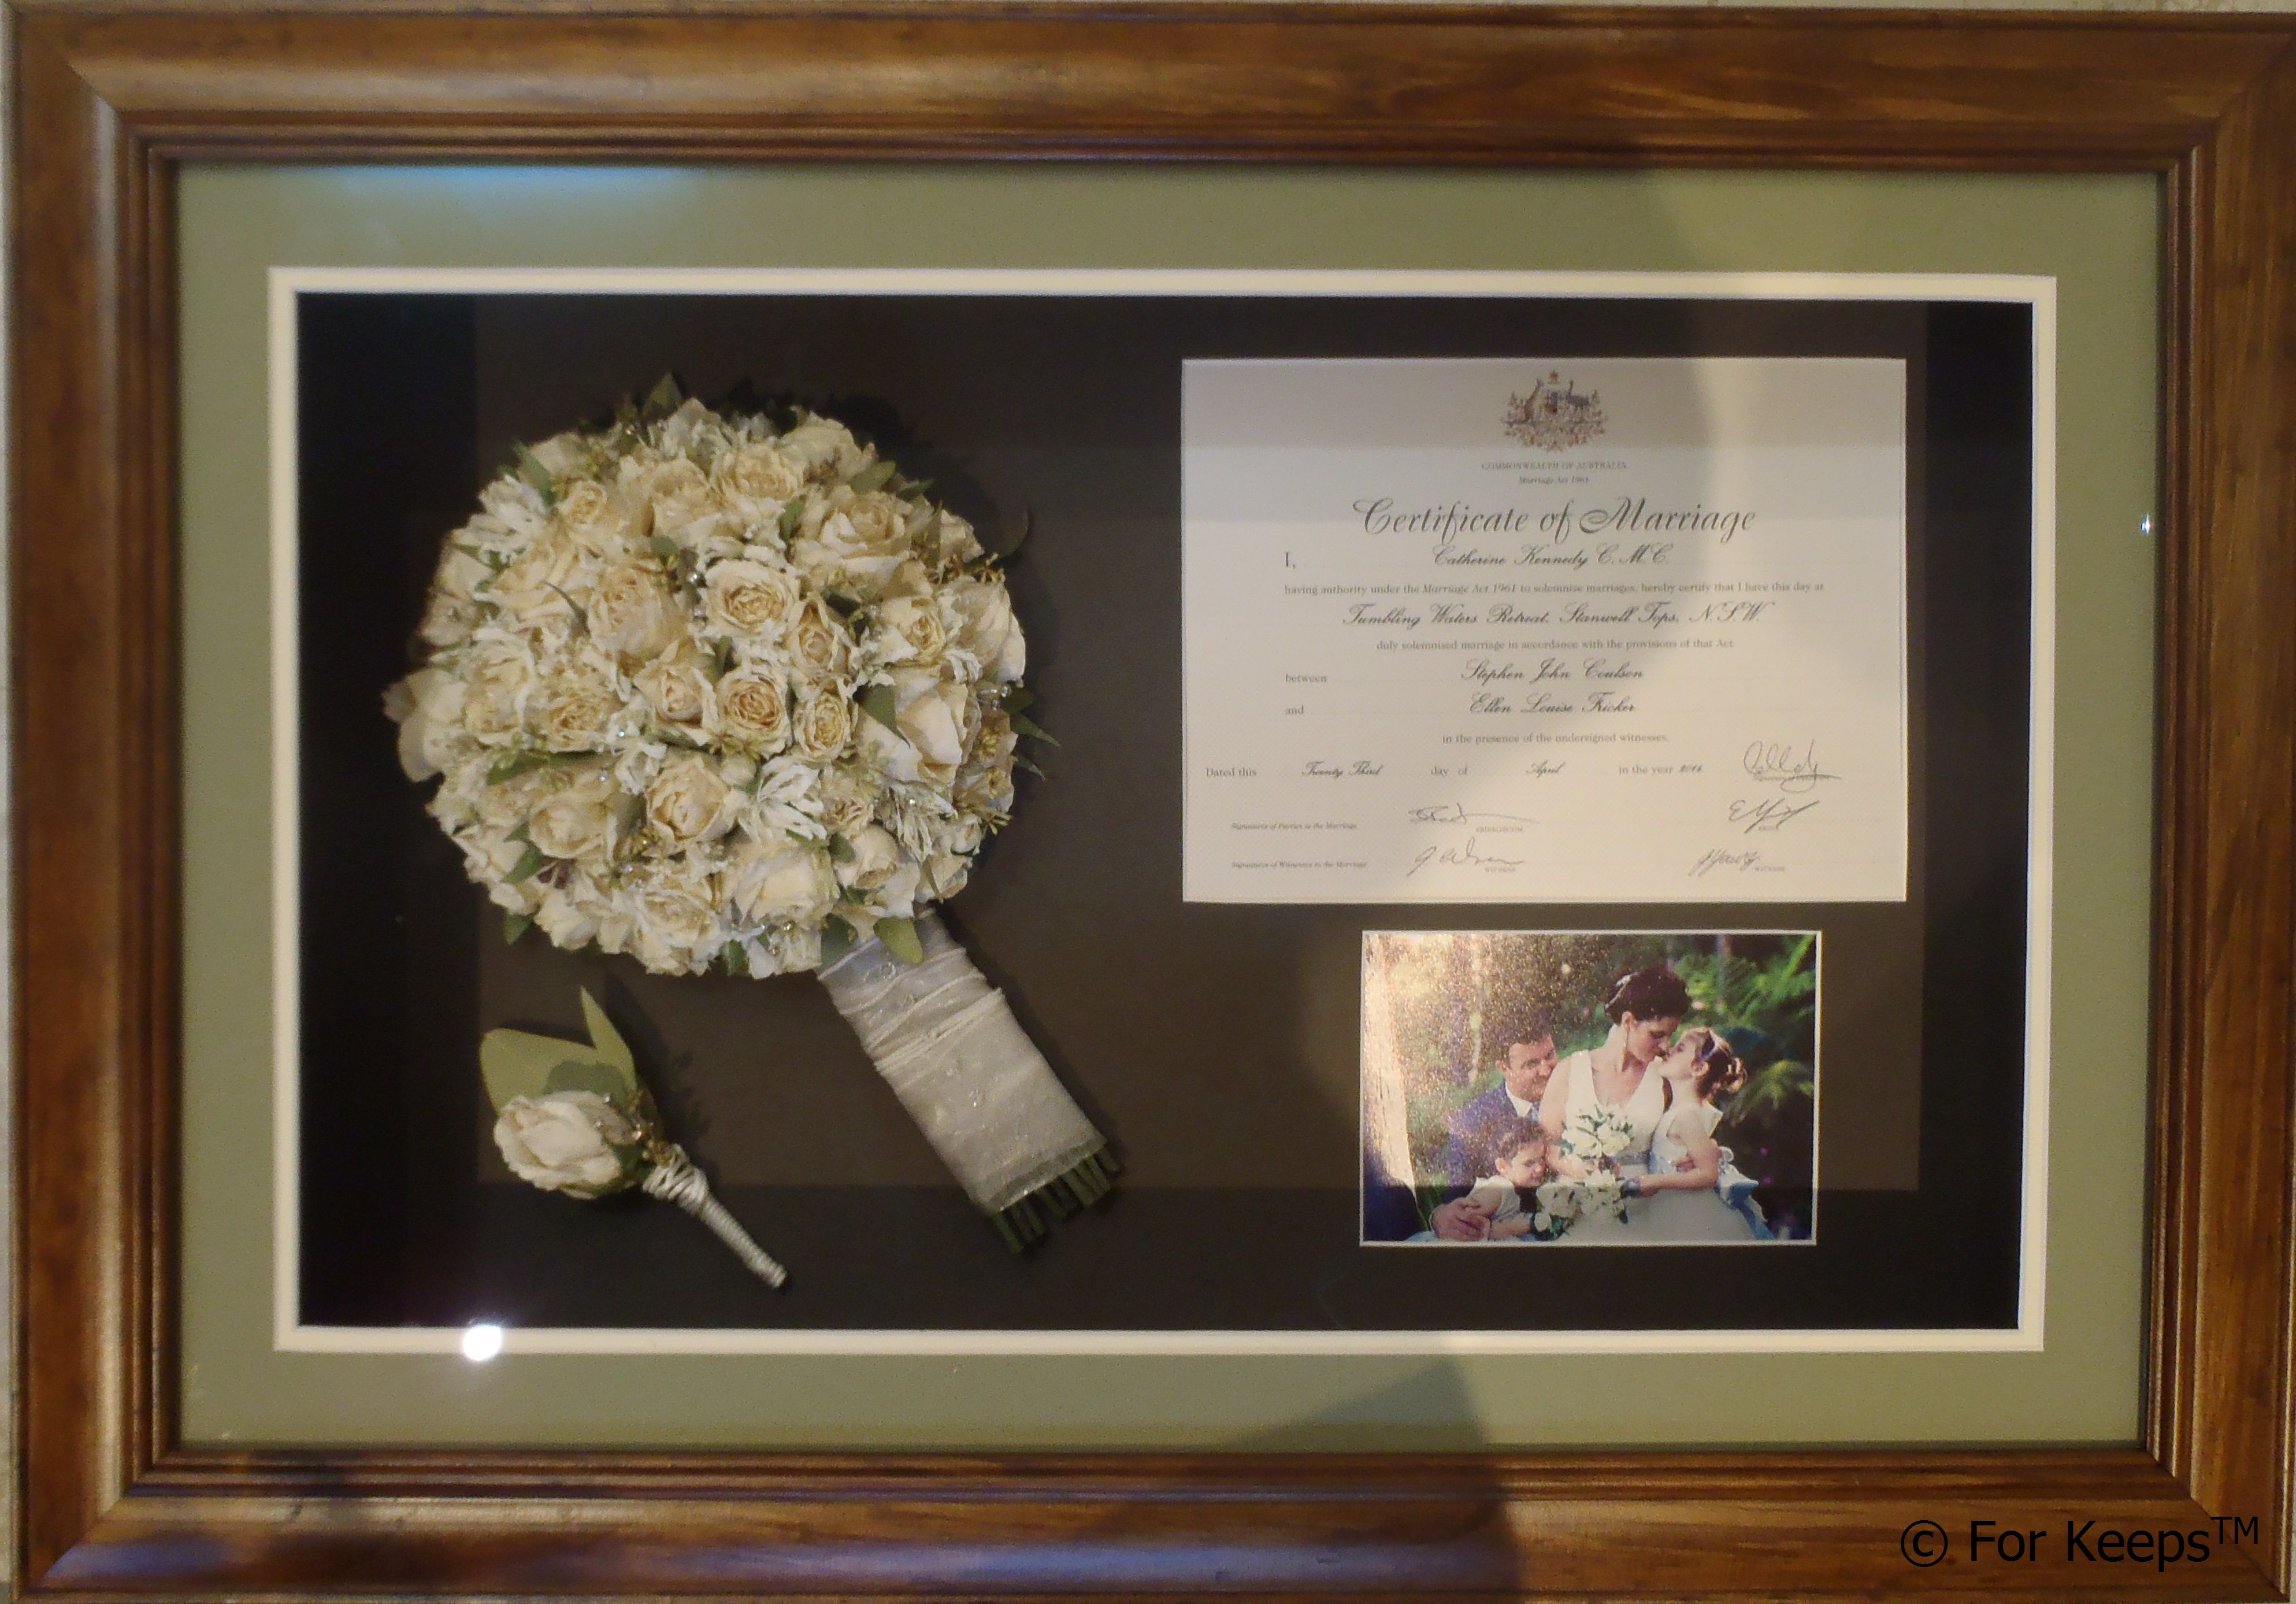 A Good Place To Display Your Wedding Certificate Frames Memory Frame